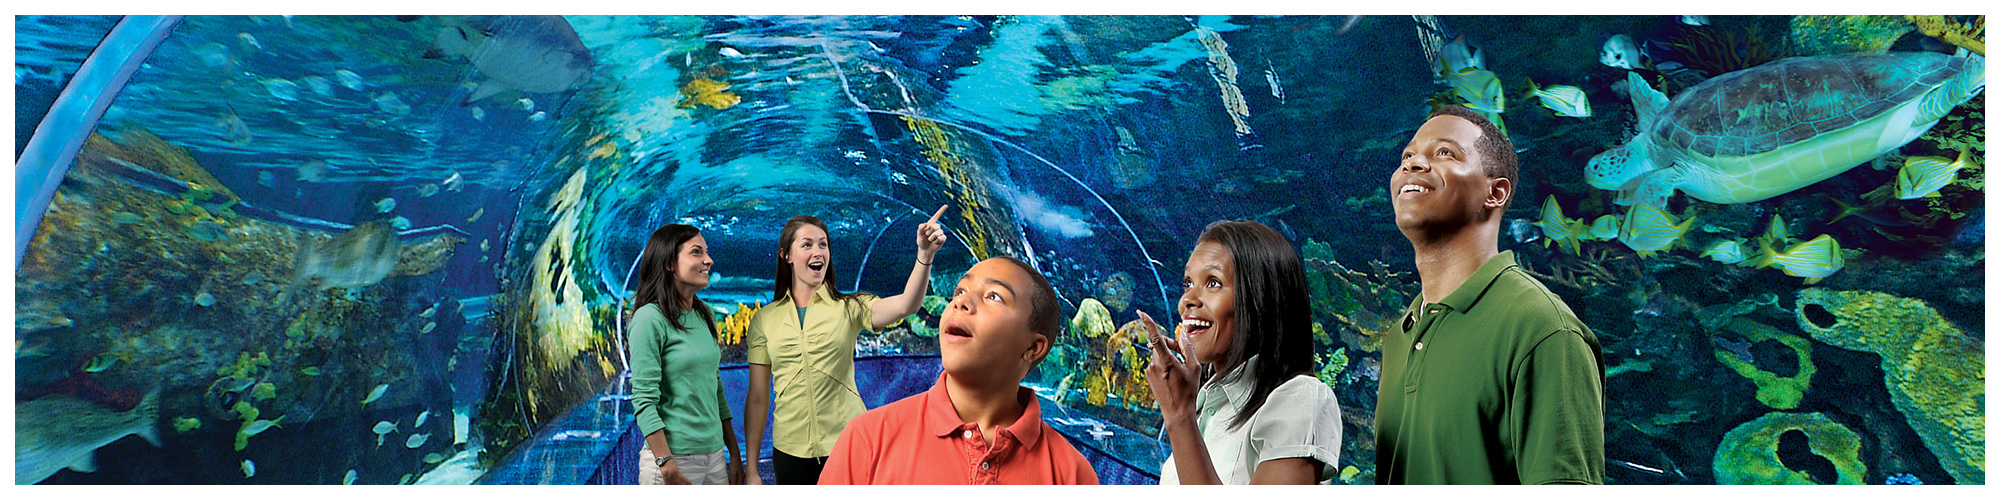 Ripley's Aquarium of the Smokies (Header Background) | Gatlinburg Attractions